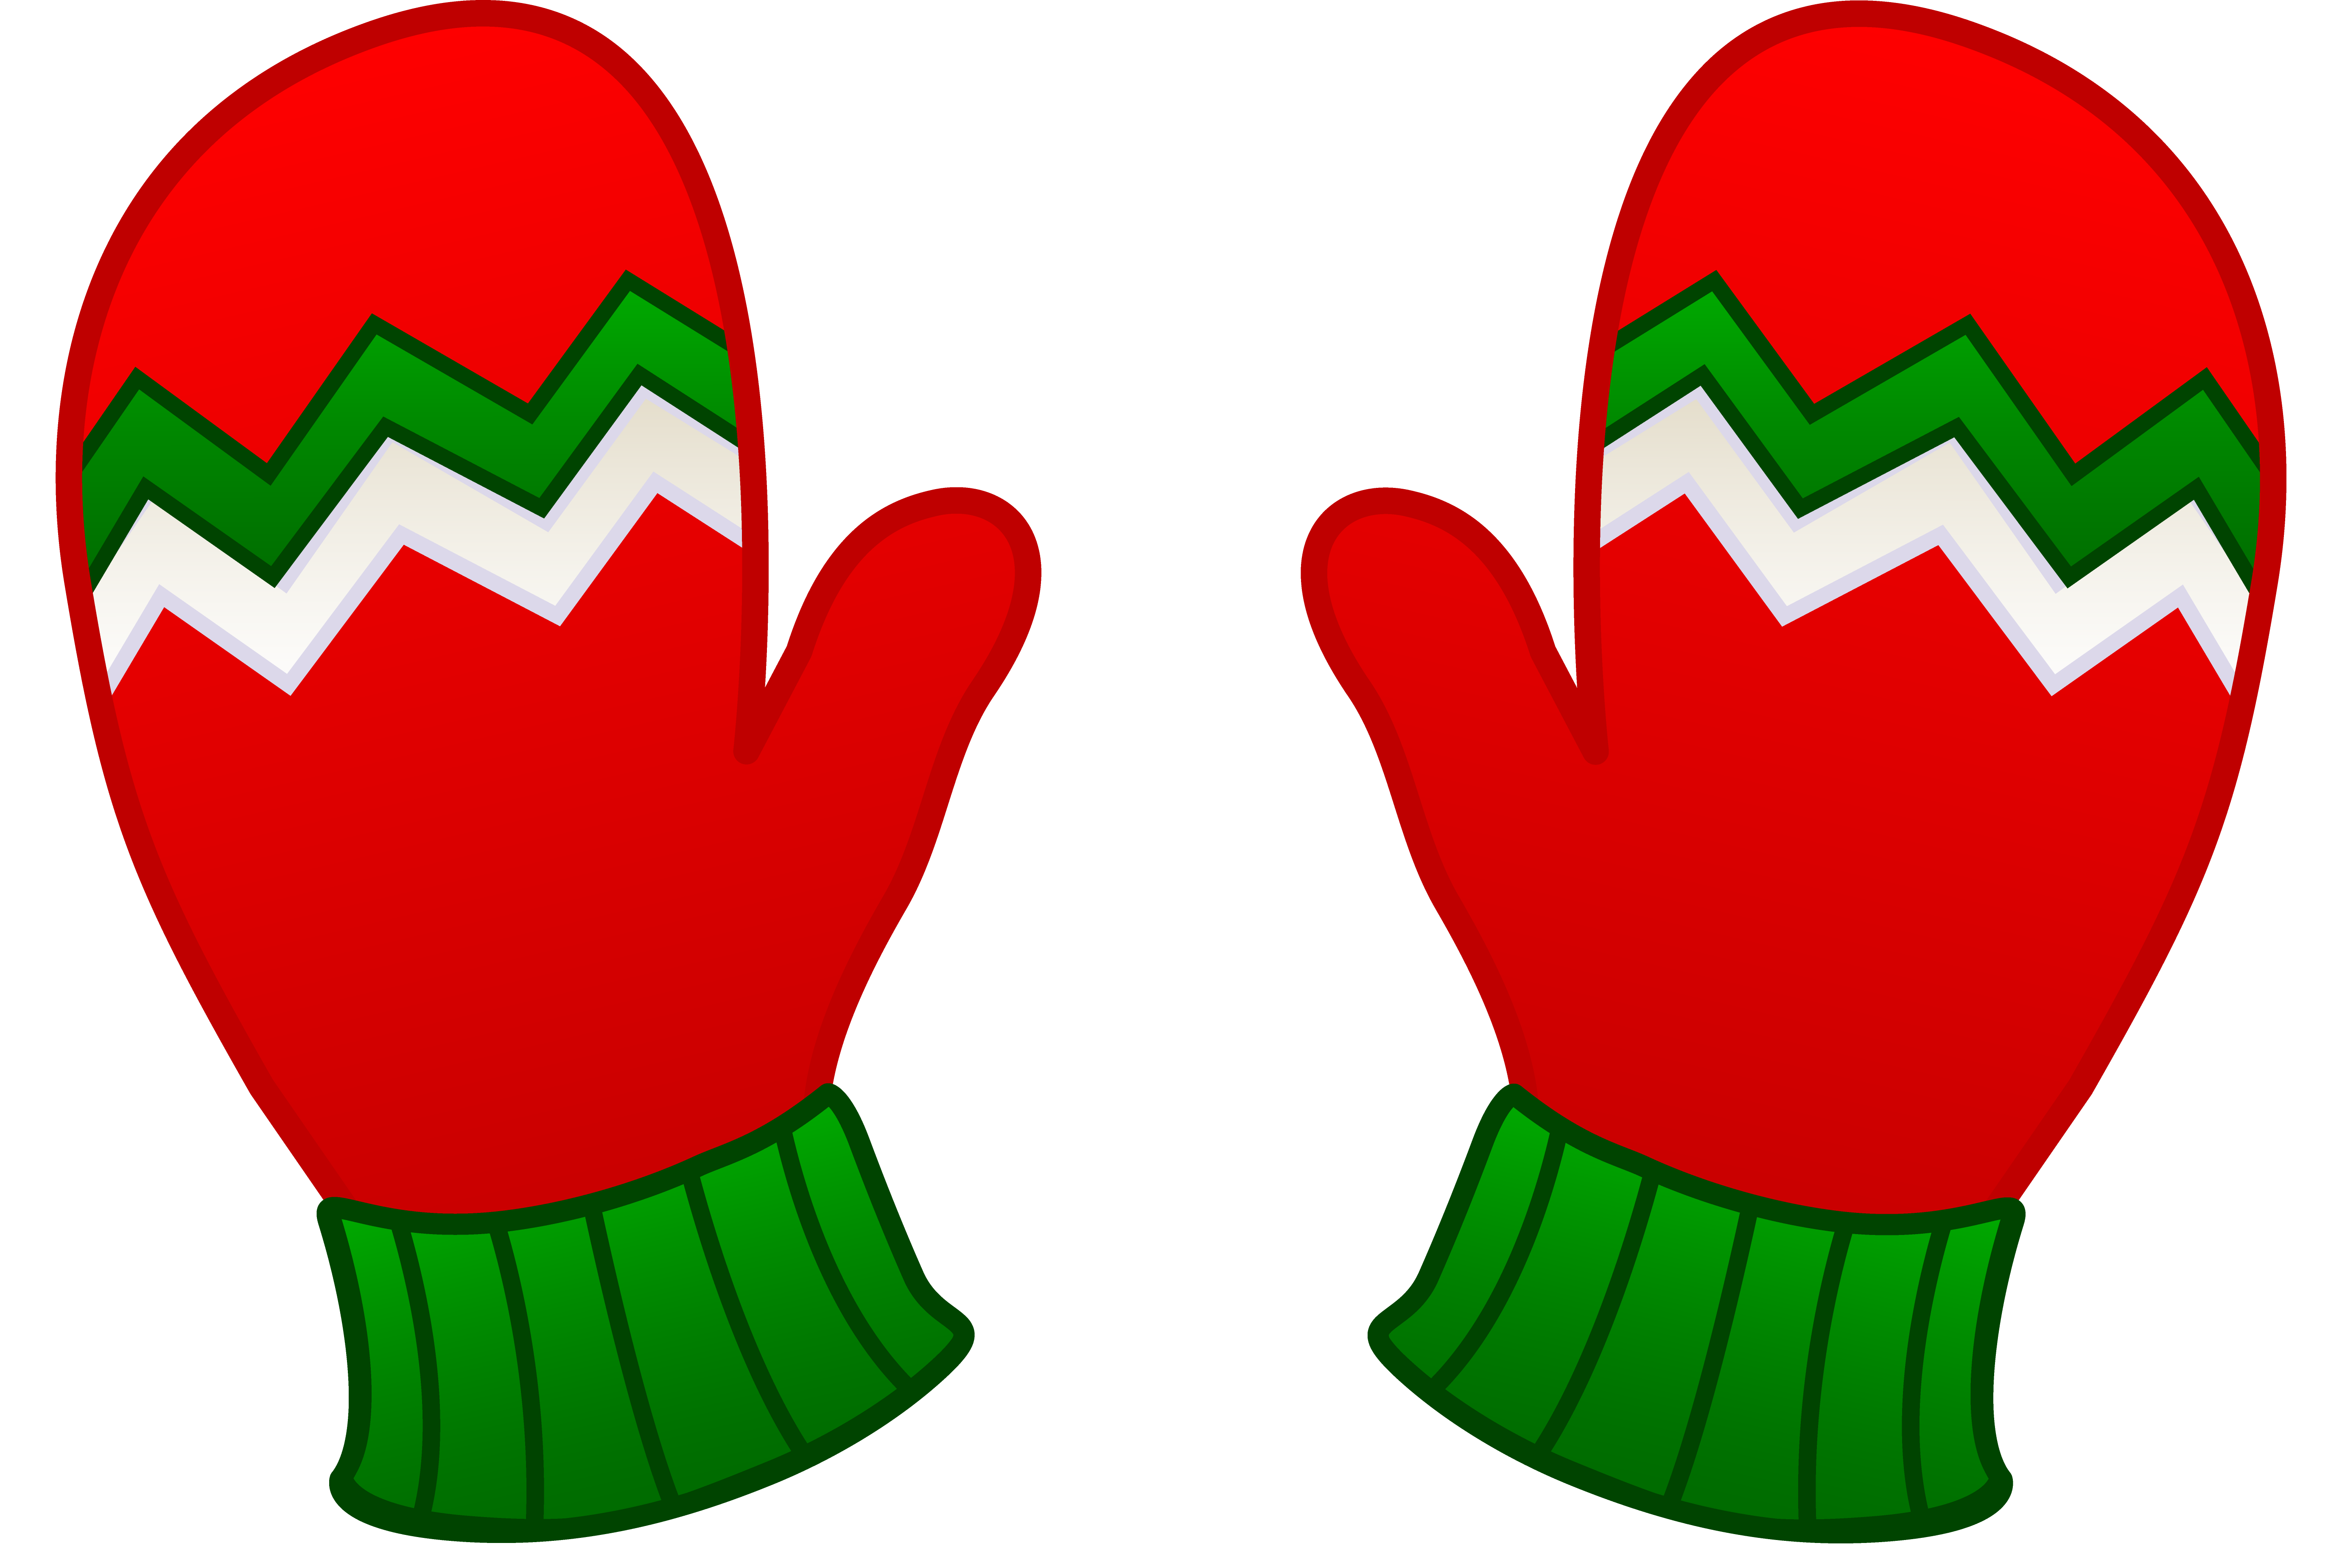 Gloves clipart. Mittens and